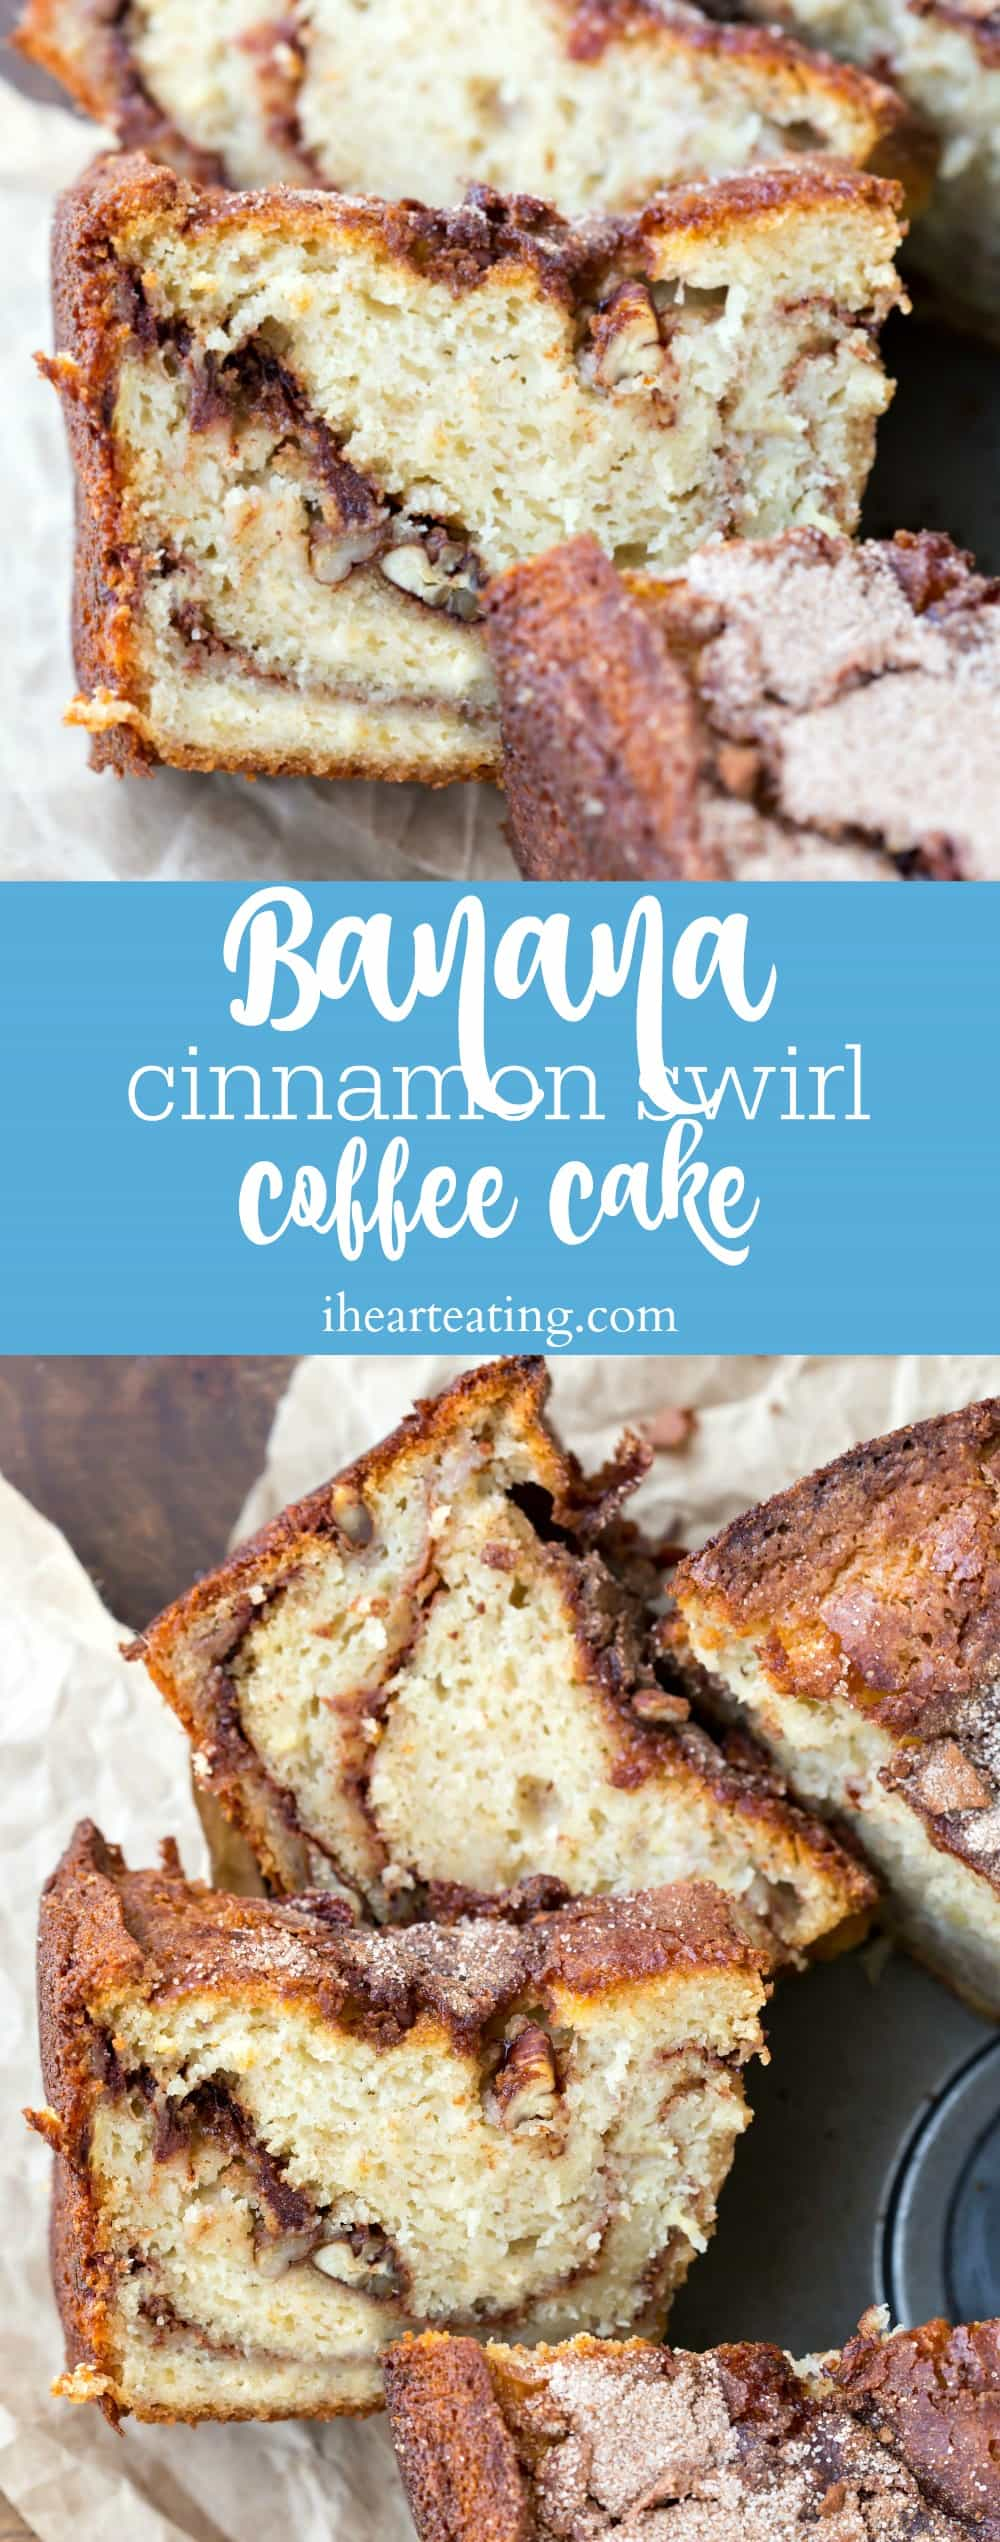 Banana Cinnamon Swirl Coffee Cake Recipe